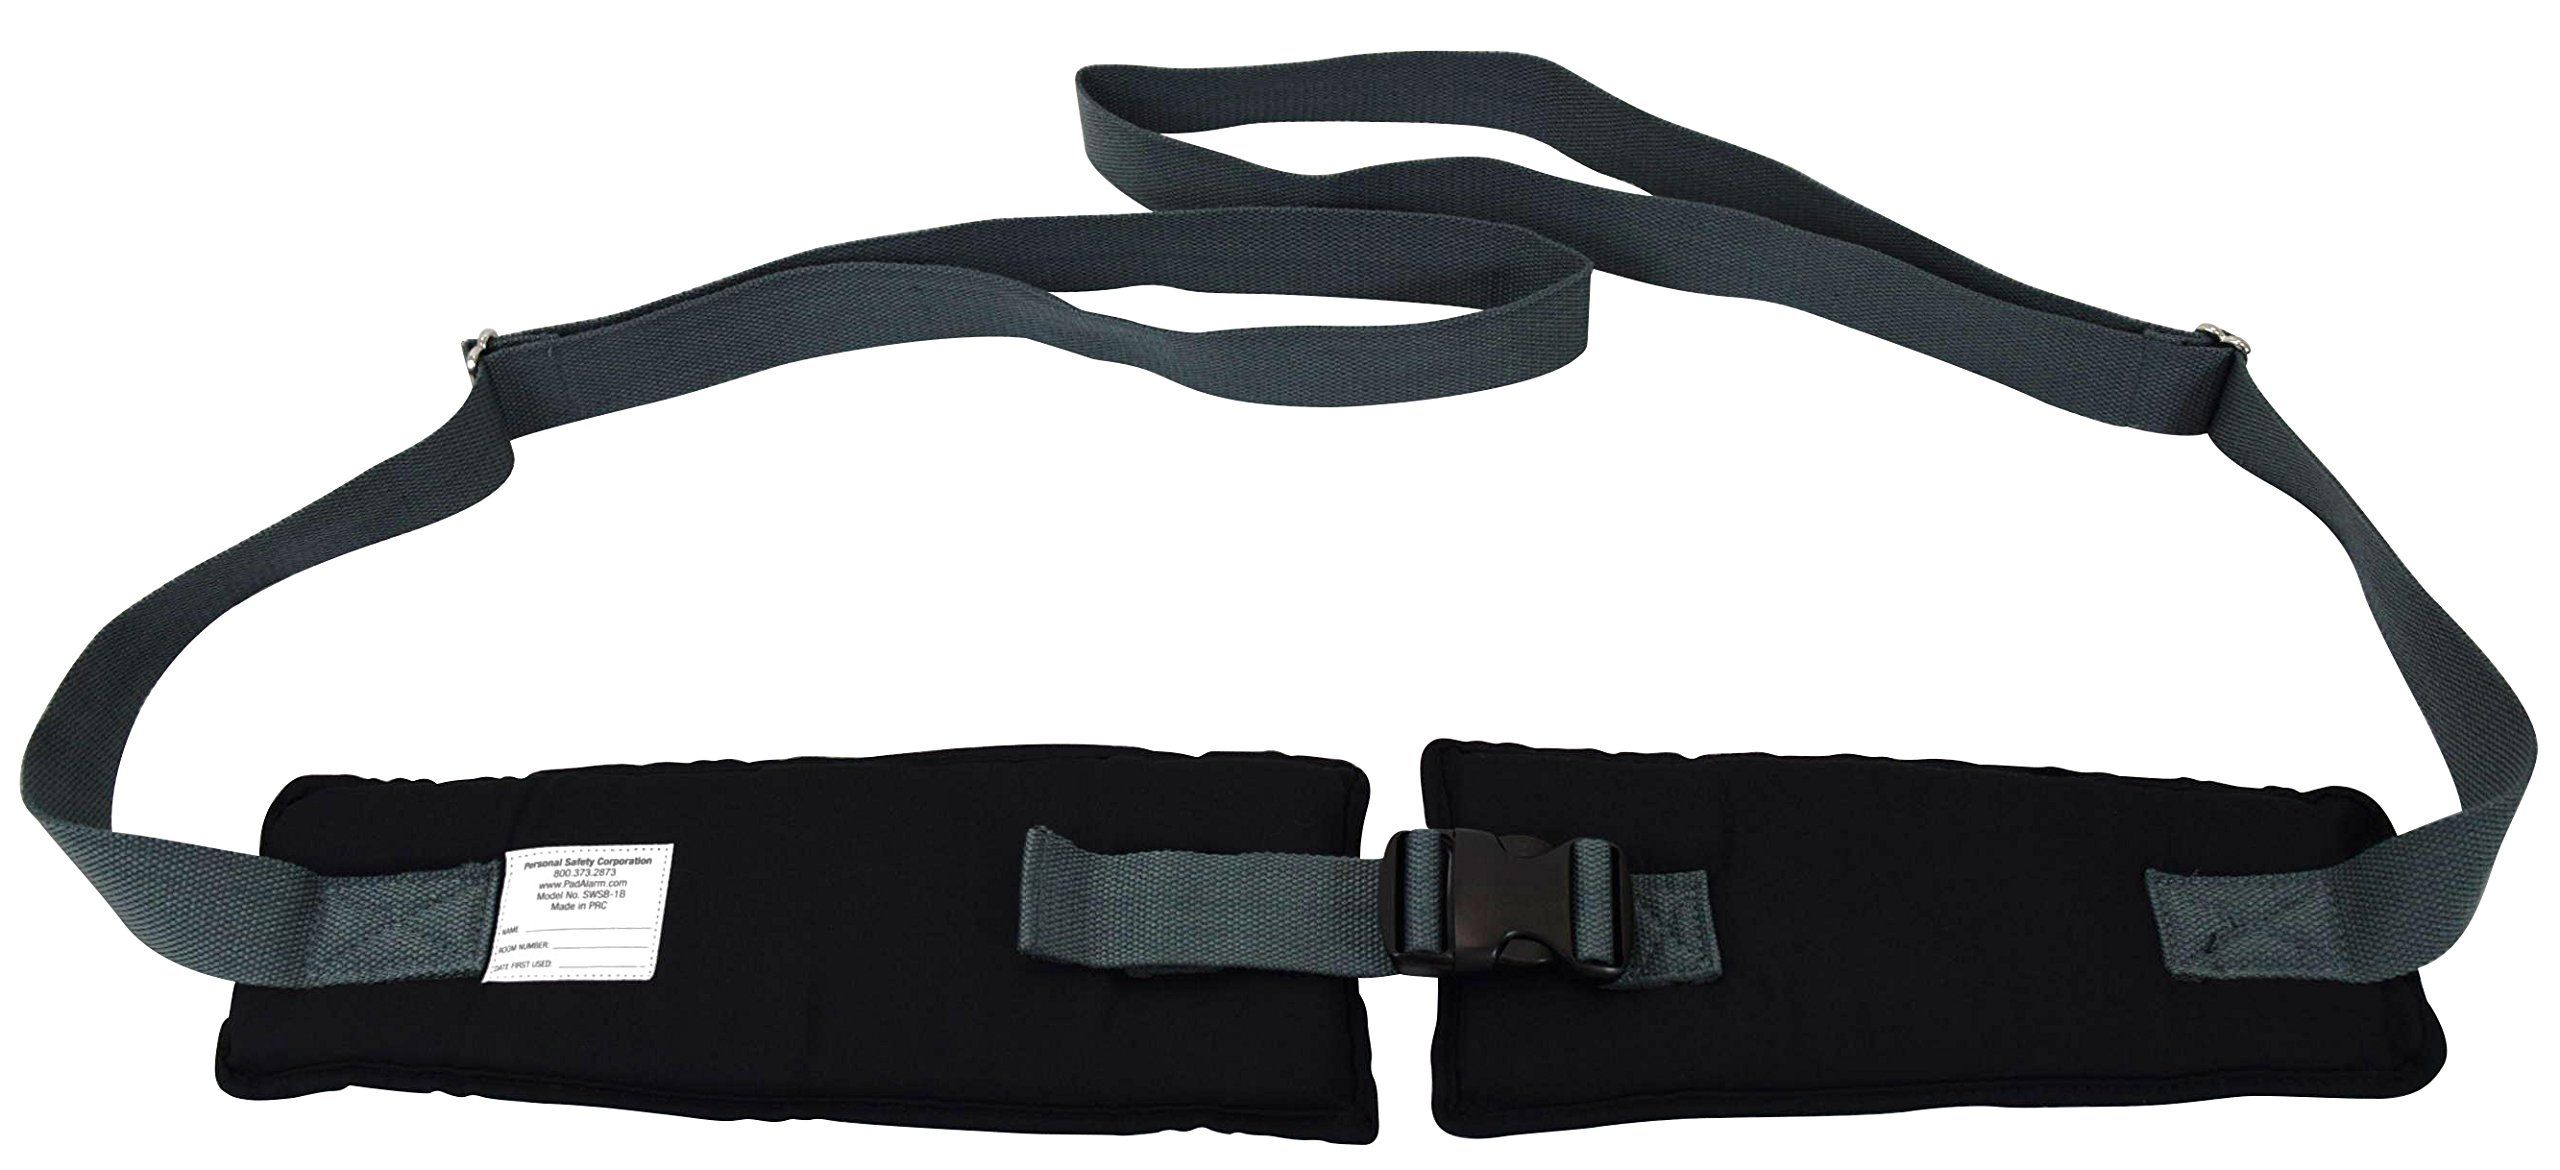 Secure SWSB-1 Soft Padded Wheelchair Positioning Belt with Easy Release Buckle, Black/Gray